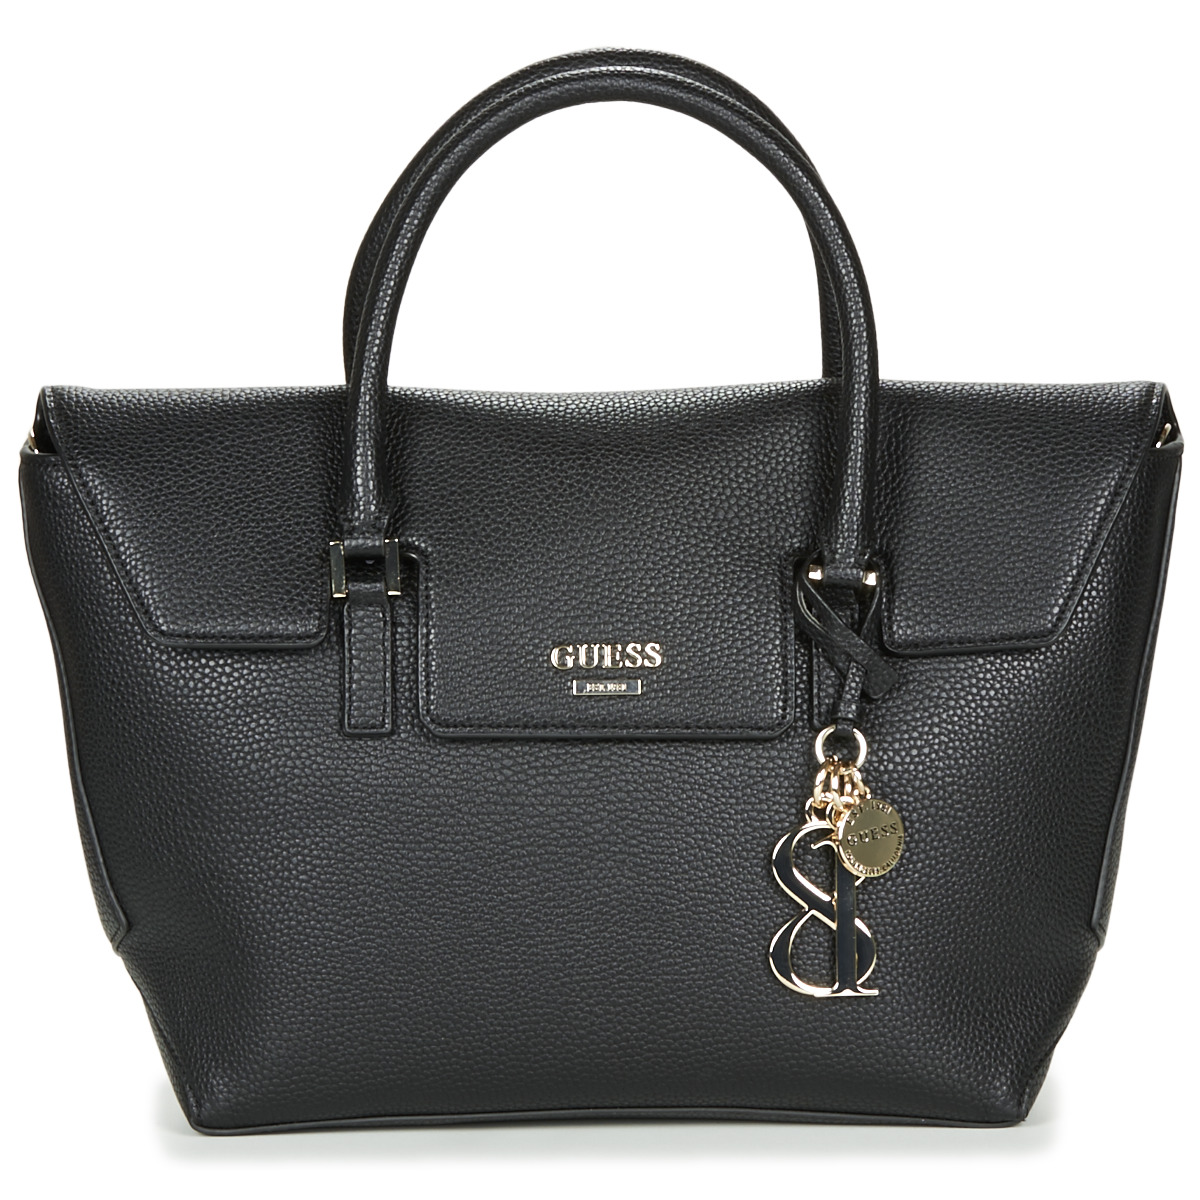 Borsette donna Guess  WEST SIDE FLAP SATCHEL  Nero